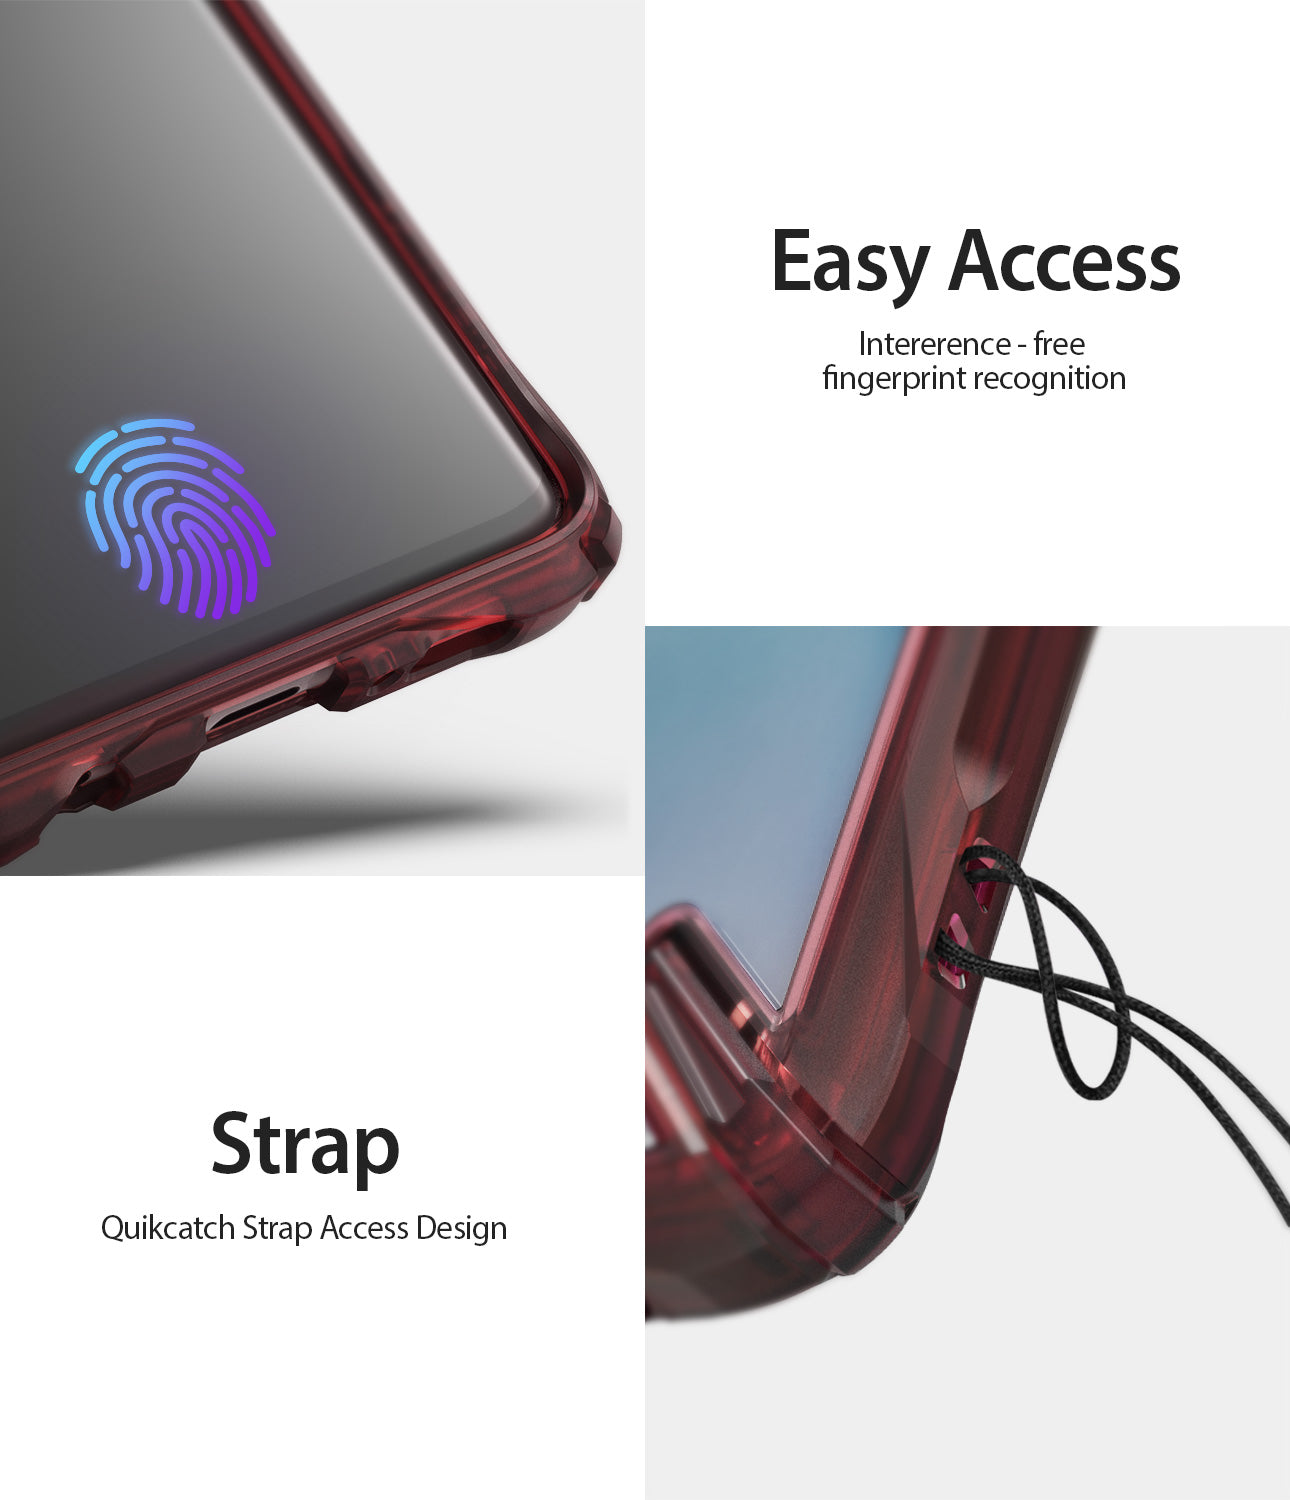 easy access interference free fingerprint recognition with quikcatch strap aceess design